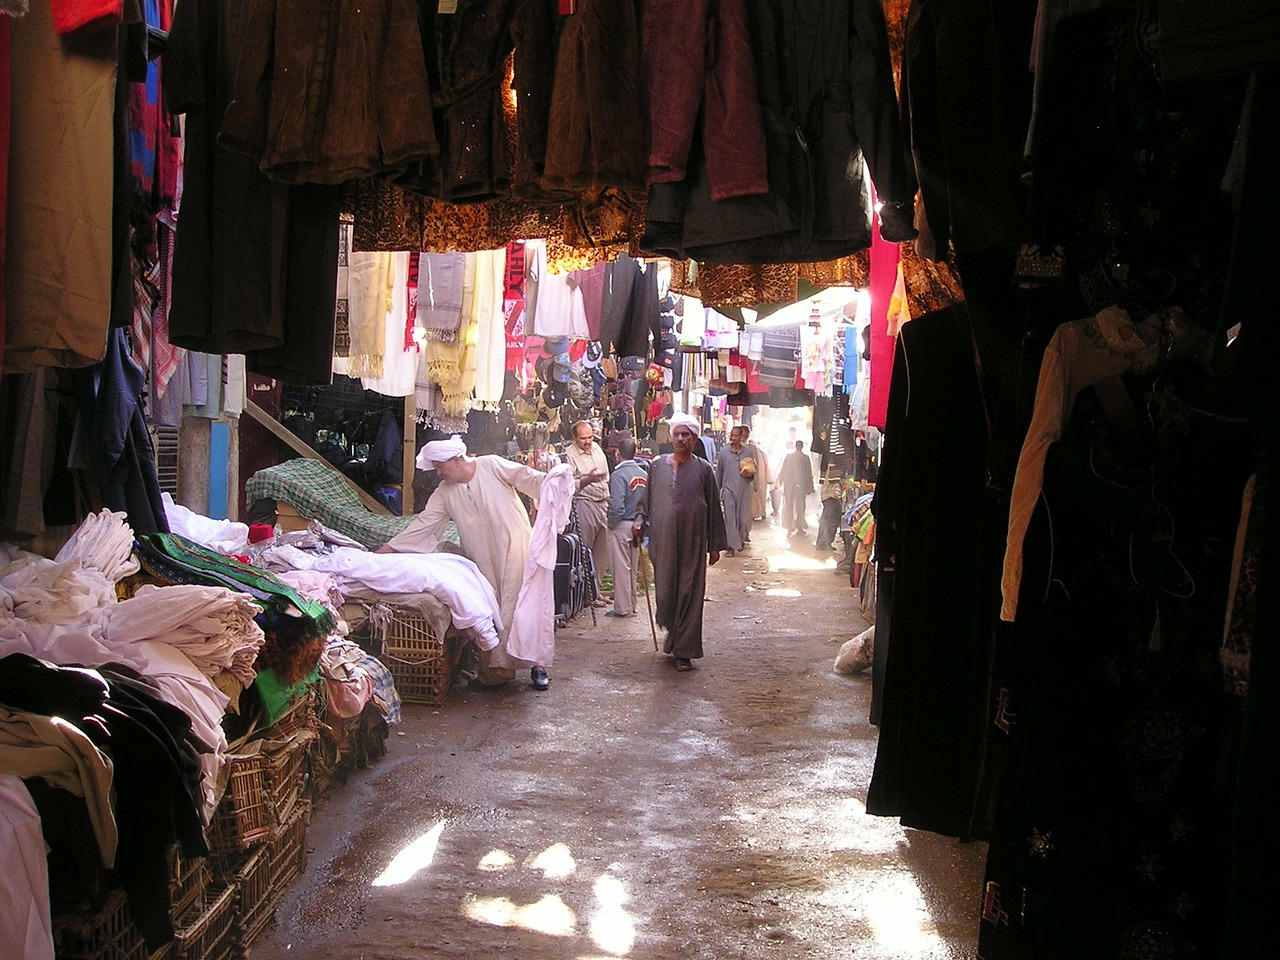 egypt,luxor,market,souque,trade,free pictures, free photos, free images, royalty free, free illustrations, public domain